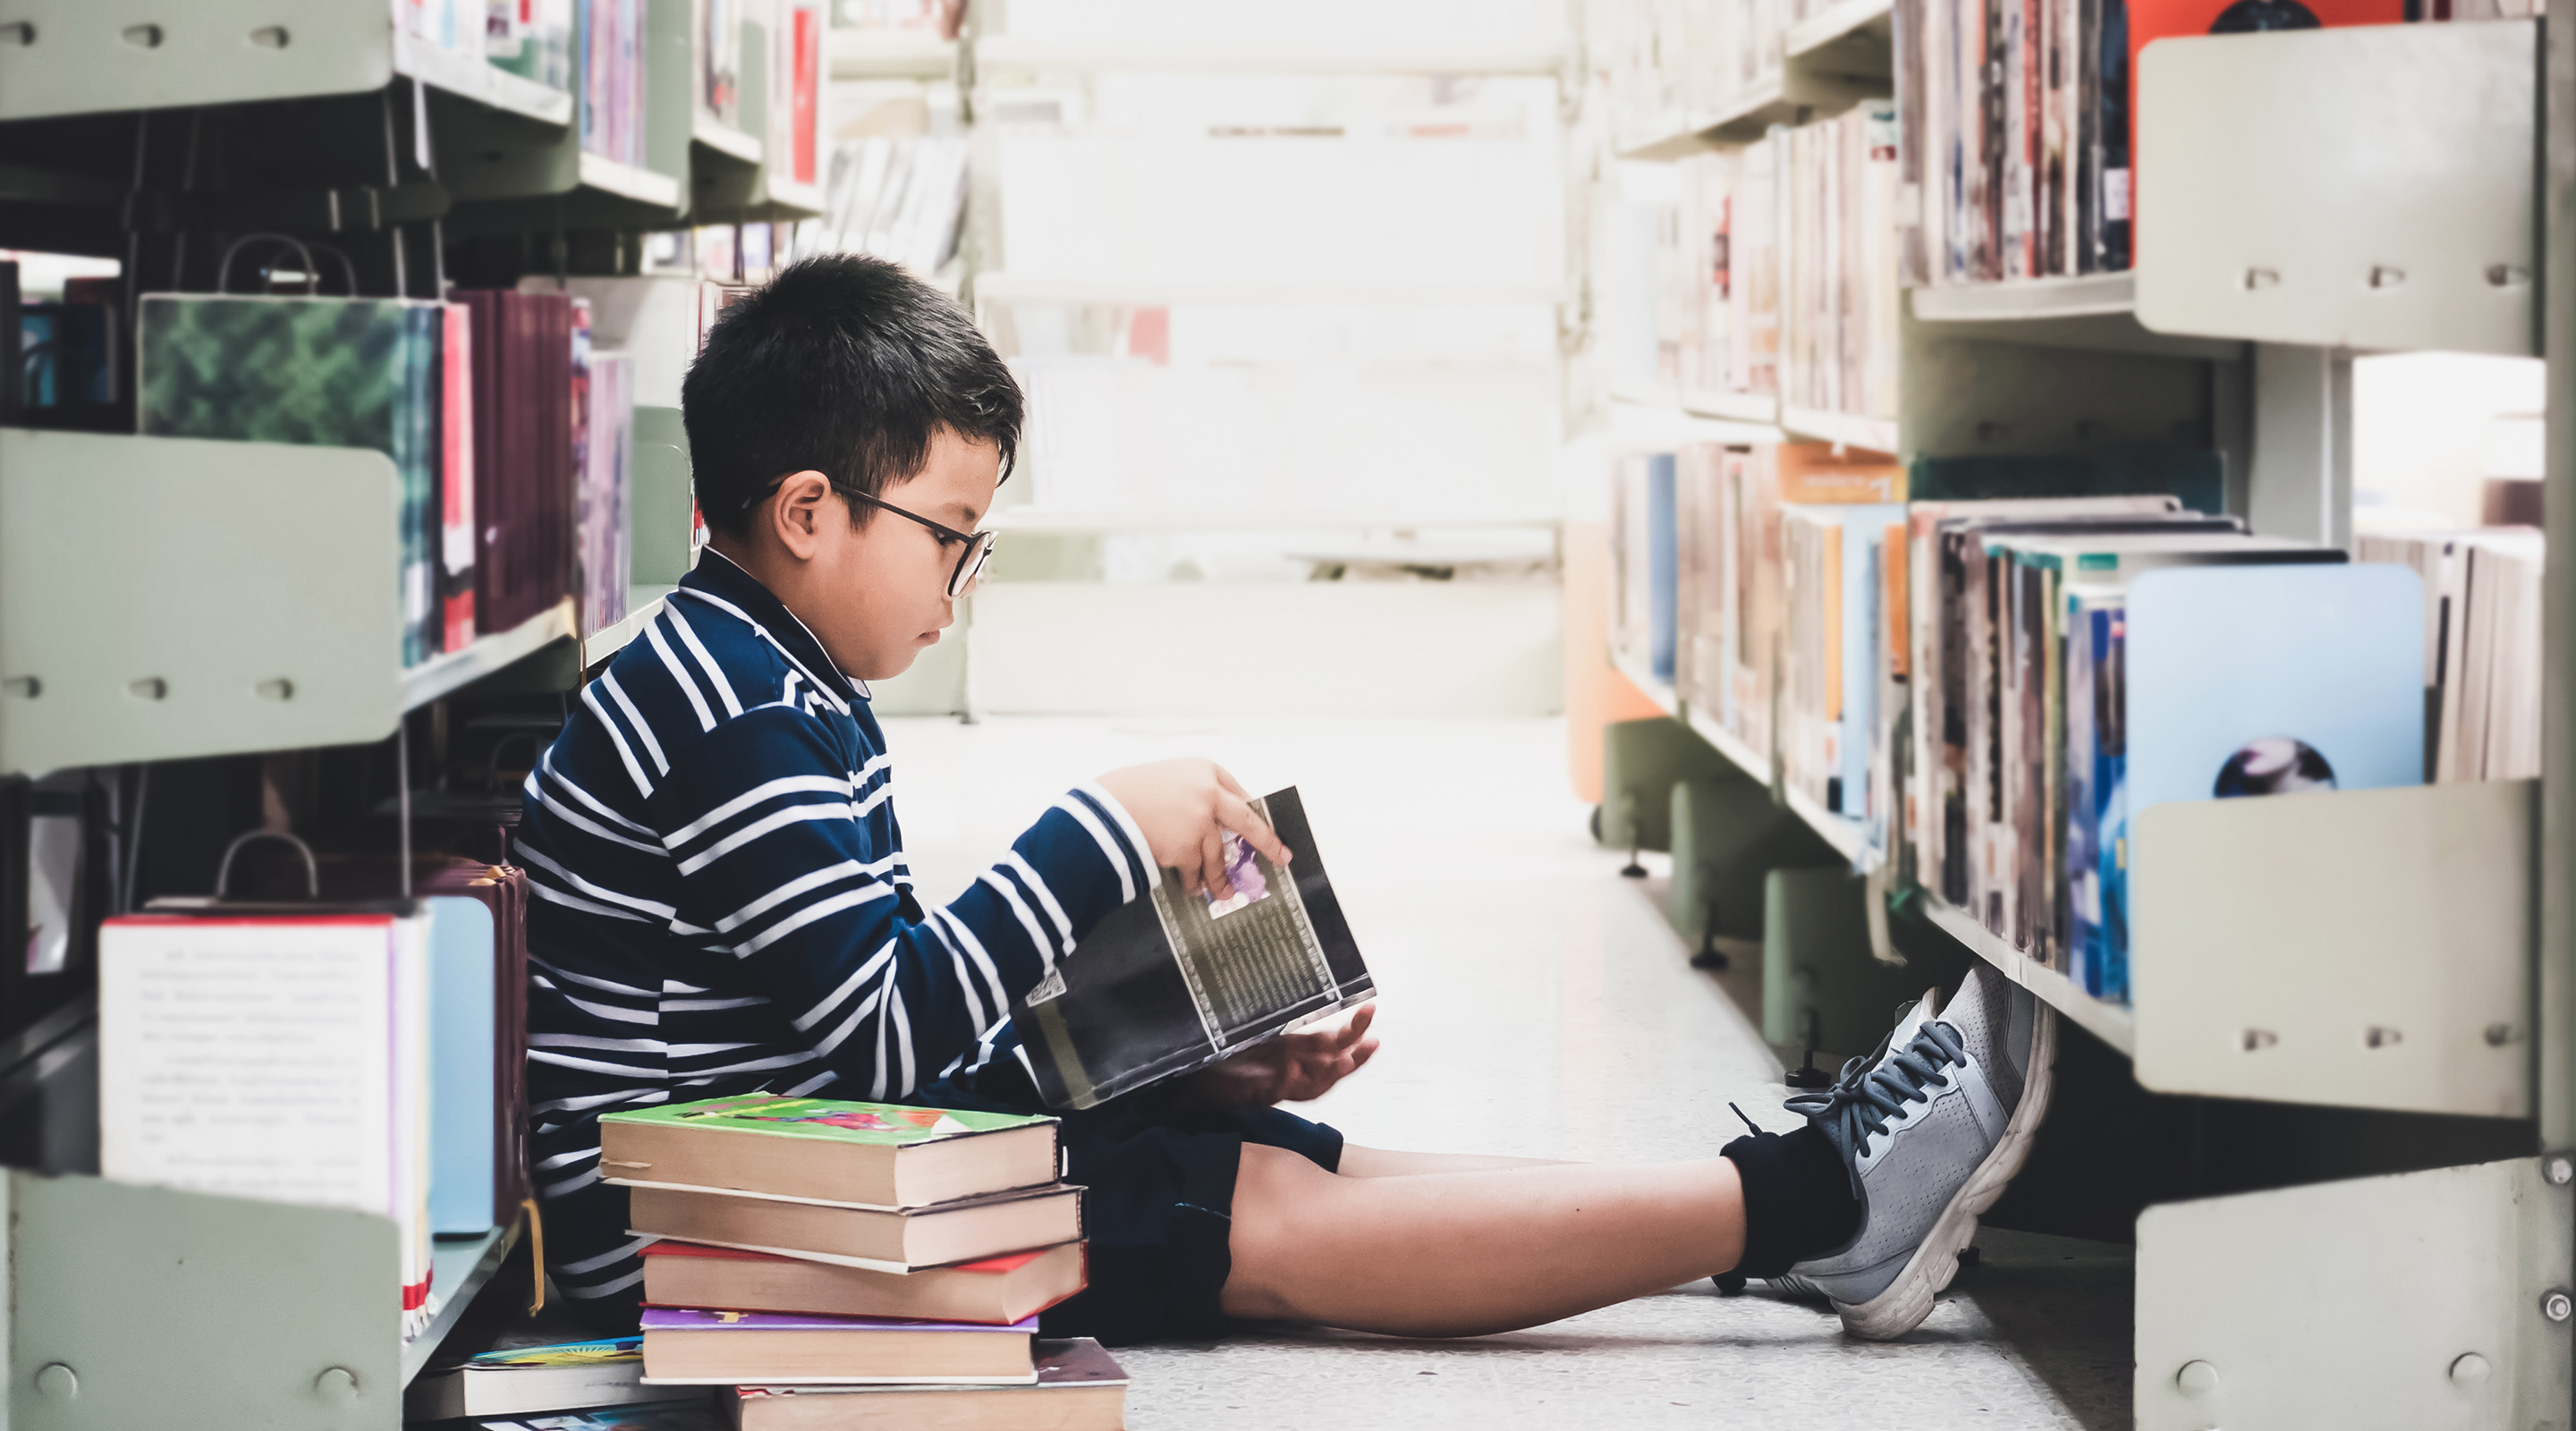 Image of a young male student sitting on the floor inside a school library reading a book as he leans against a wall of books